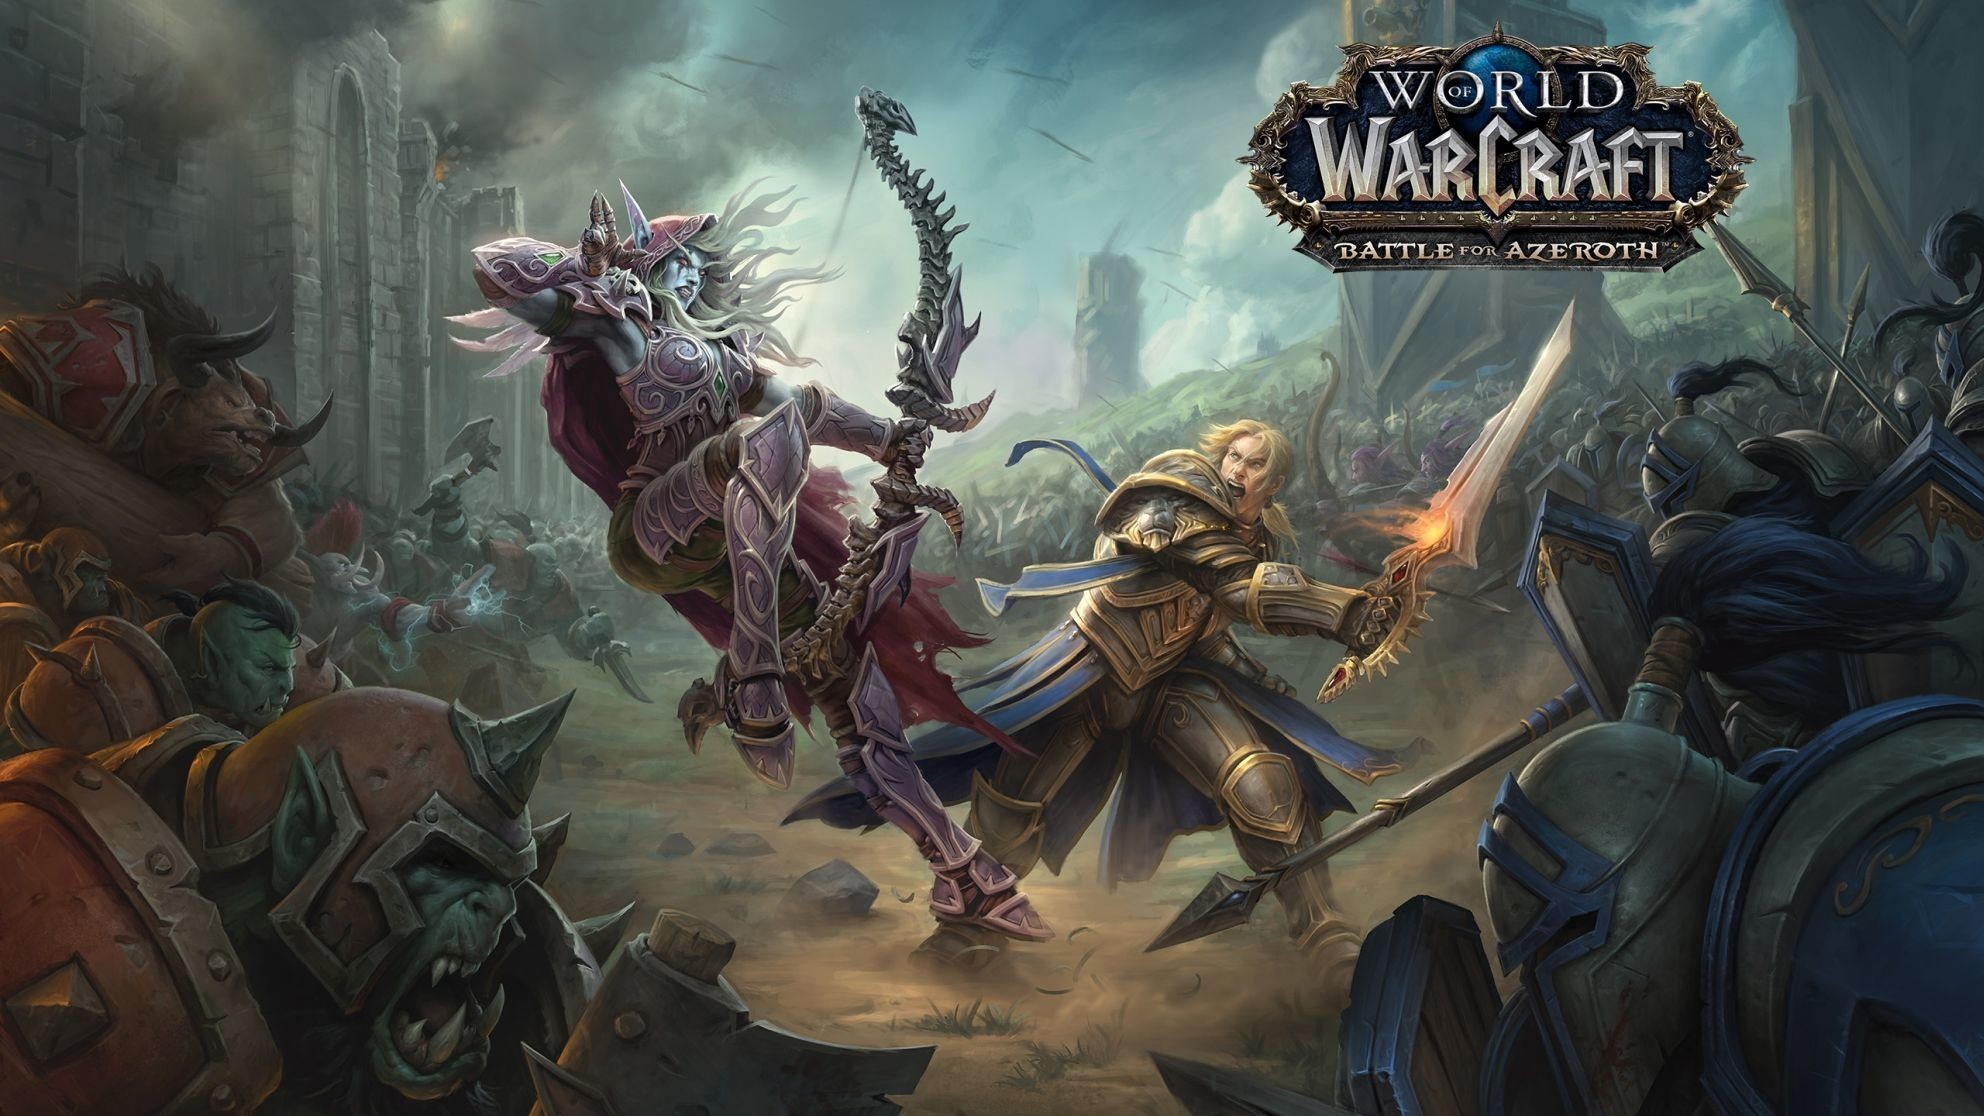 Blizzard Losing the Battle (for Azeroth)?